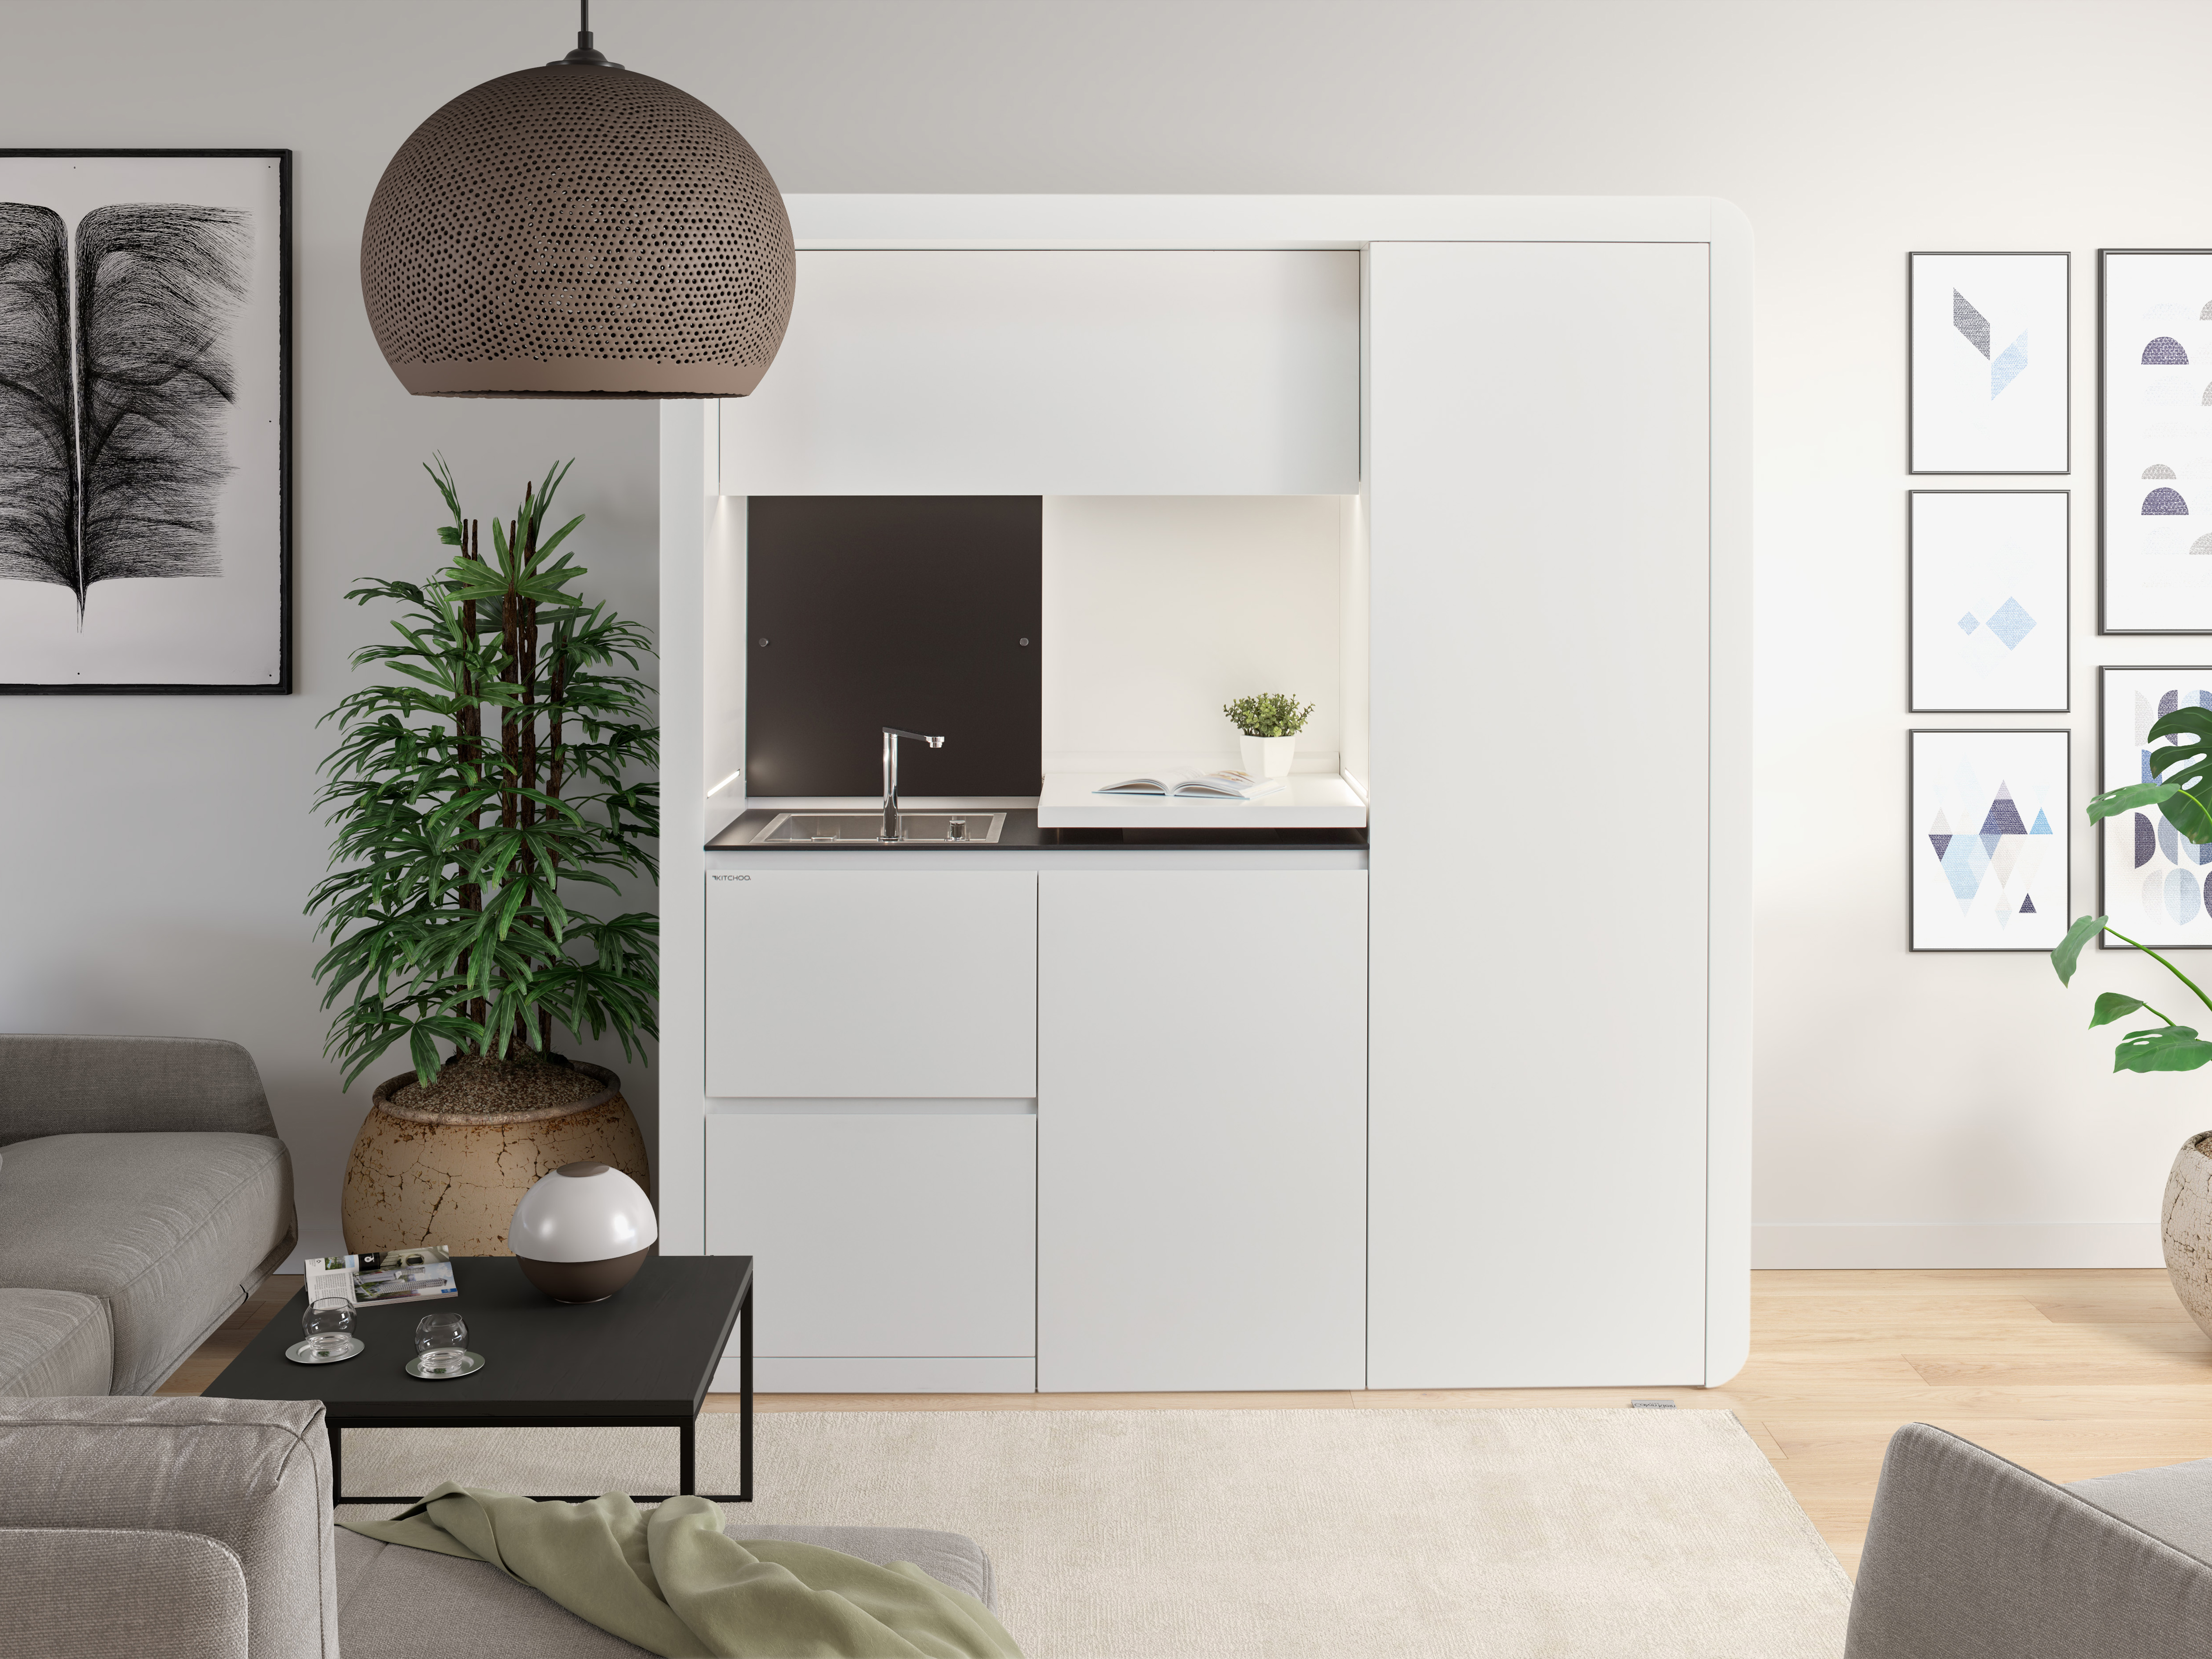 Space Optimized :: Smart Designs for Small Homes